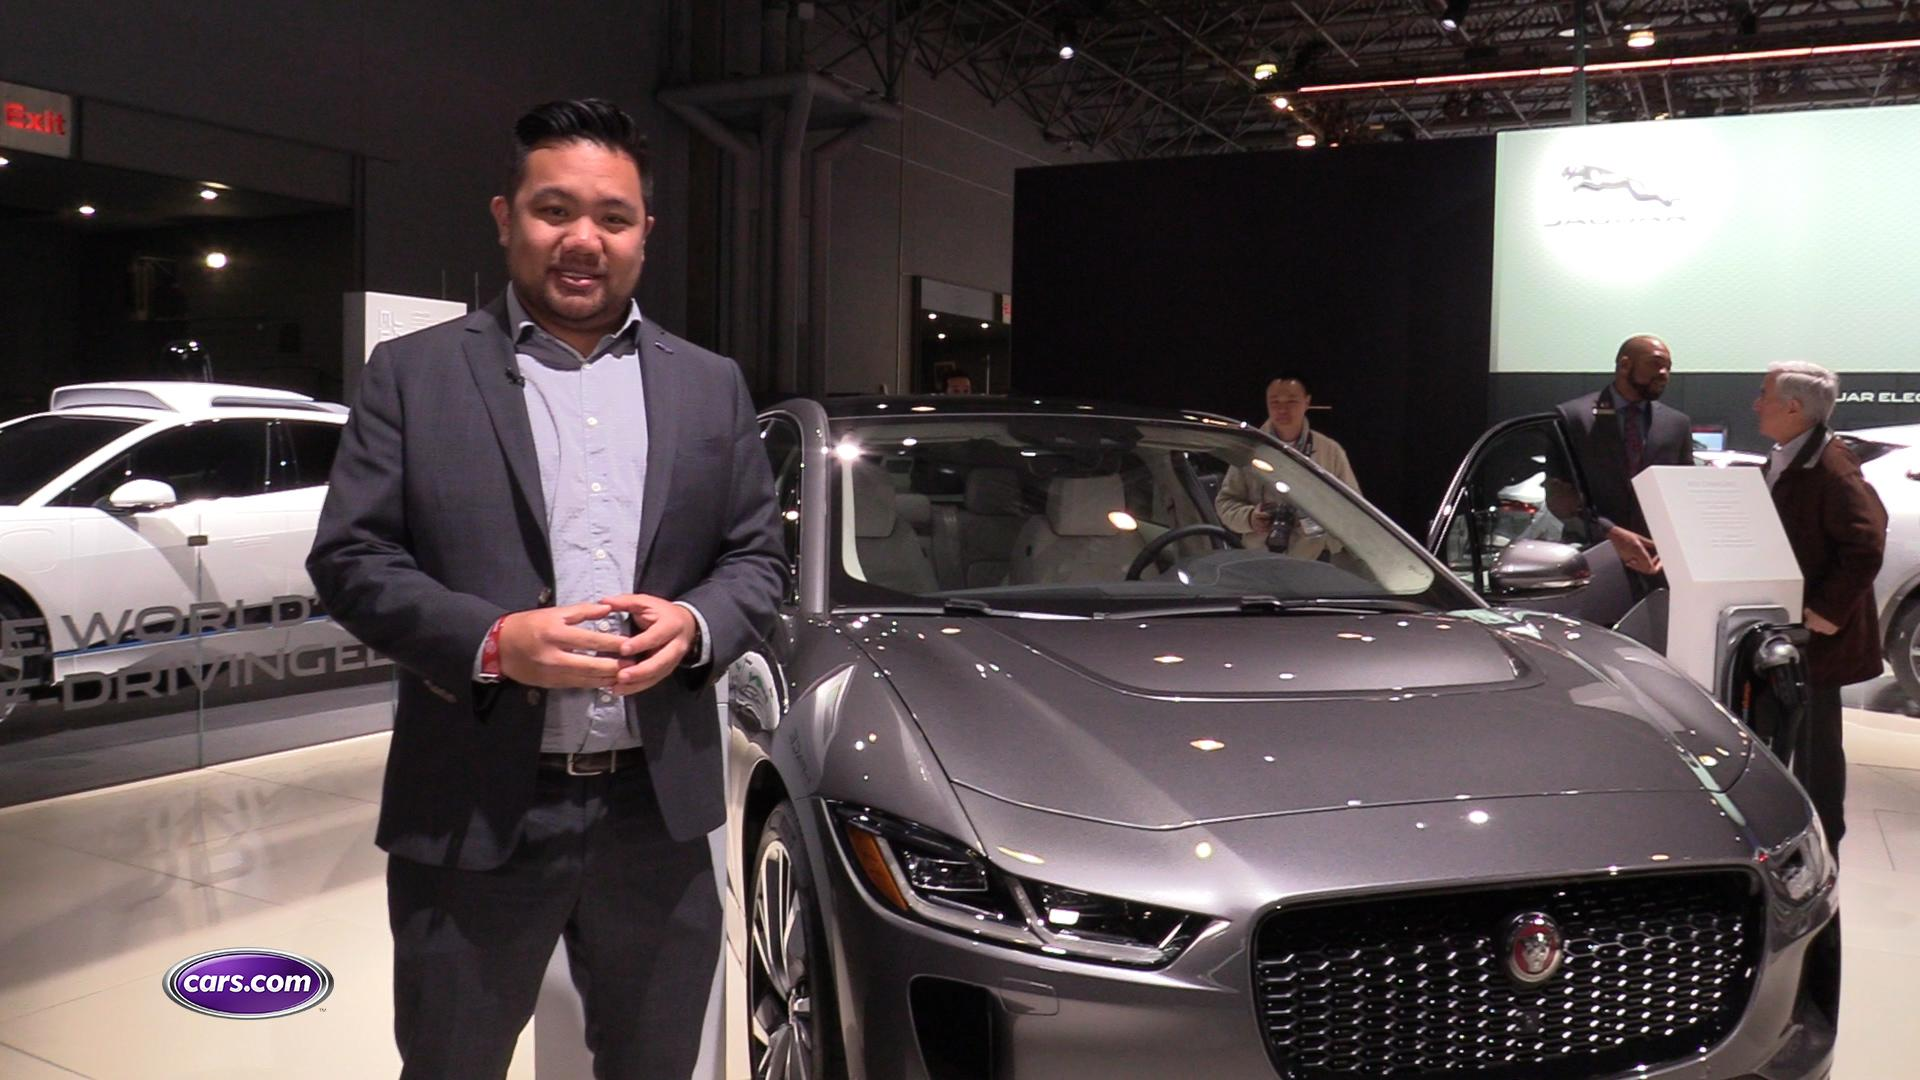 Video: 2019 Jaguar I-Pace: First Look — Cars.com